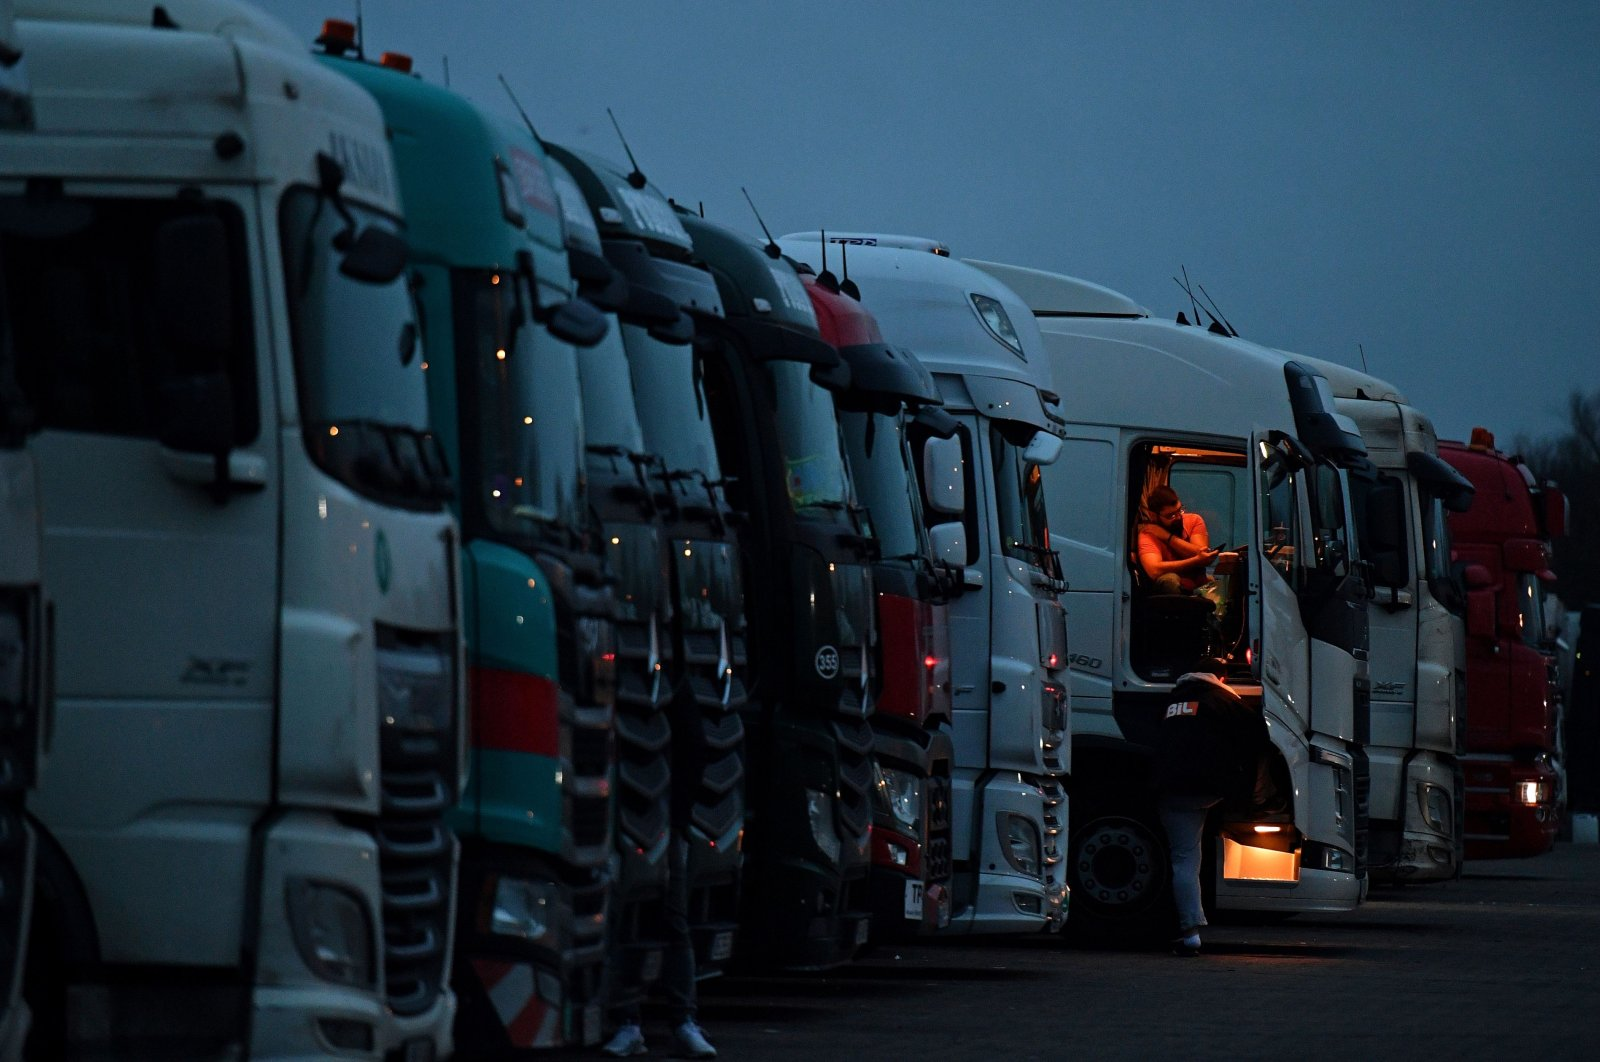 Drivers of freight lorries and heavy goods vehicles are illuminated by the lights inside their cabs as they are parked at a truck stop off the M20 leading to Dover, near Folkestone in Kent, southeast England on Dec. 22, 2020. (AFP Photo)